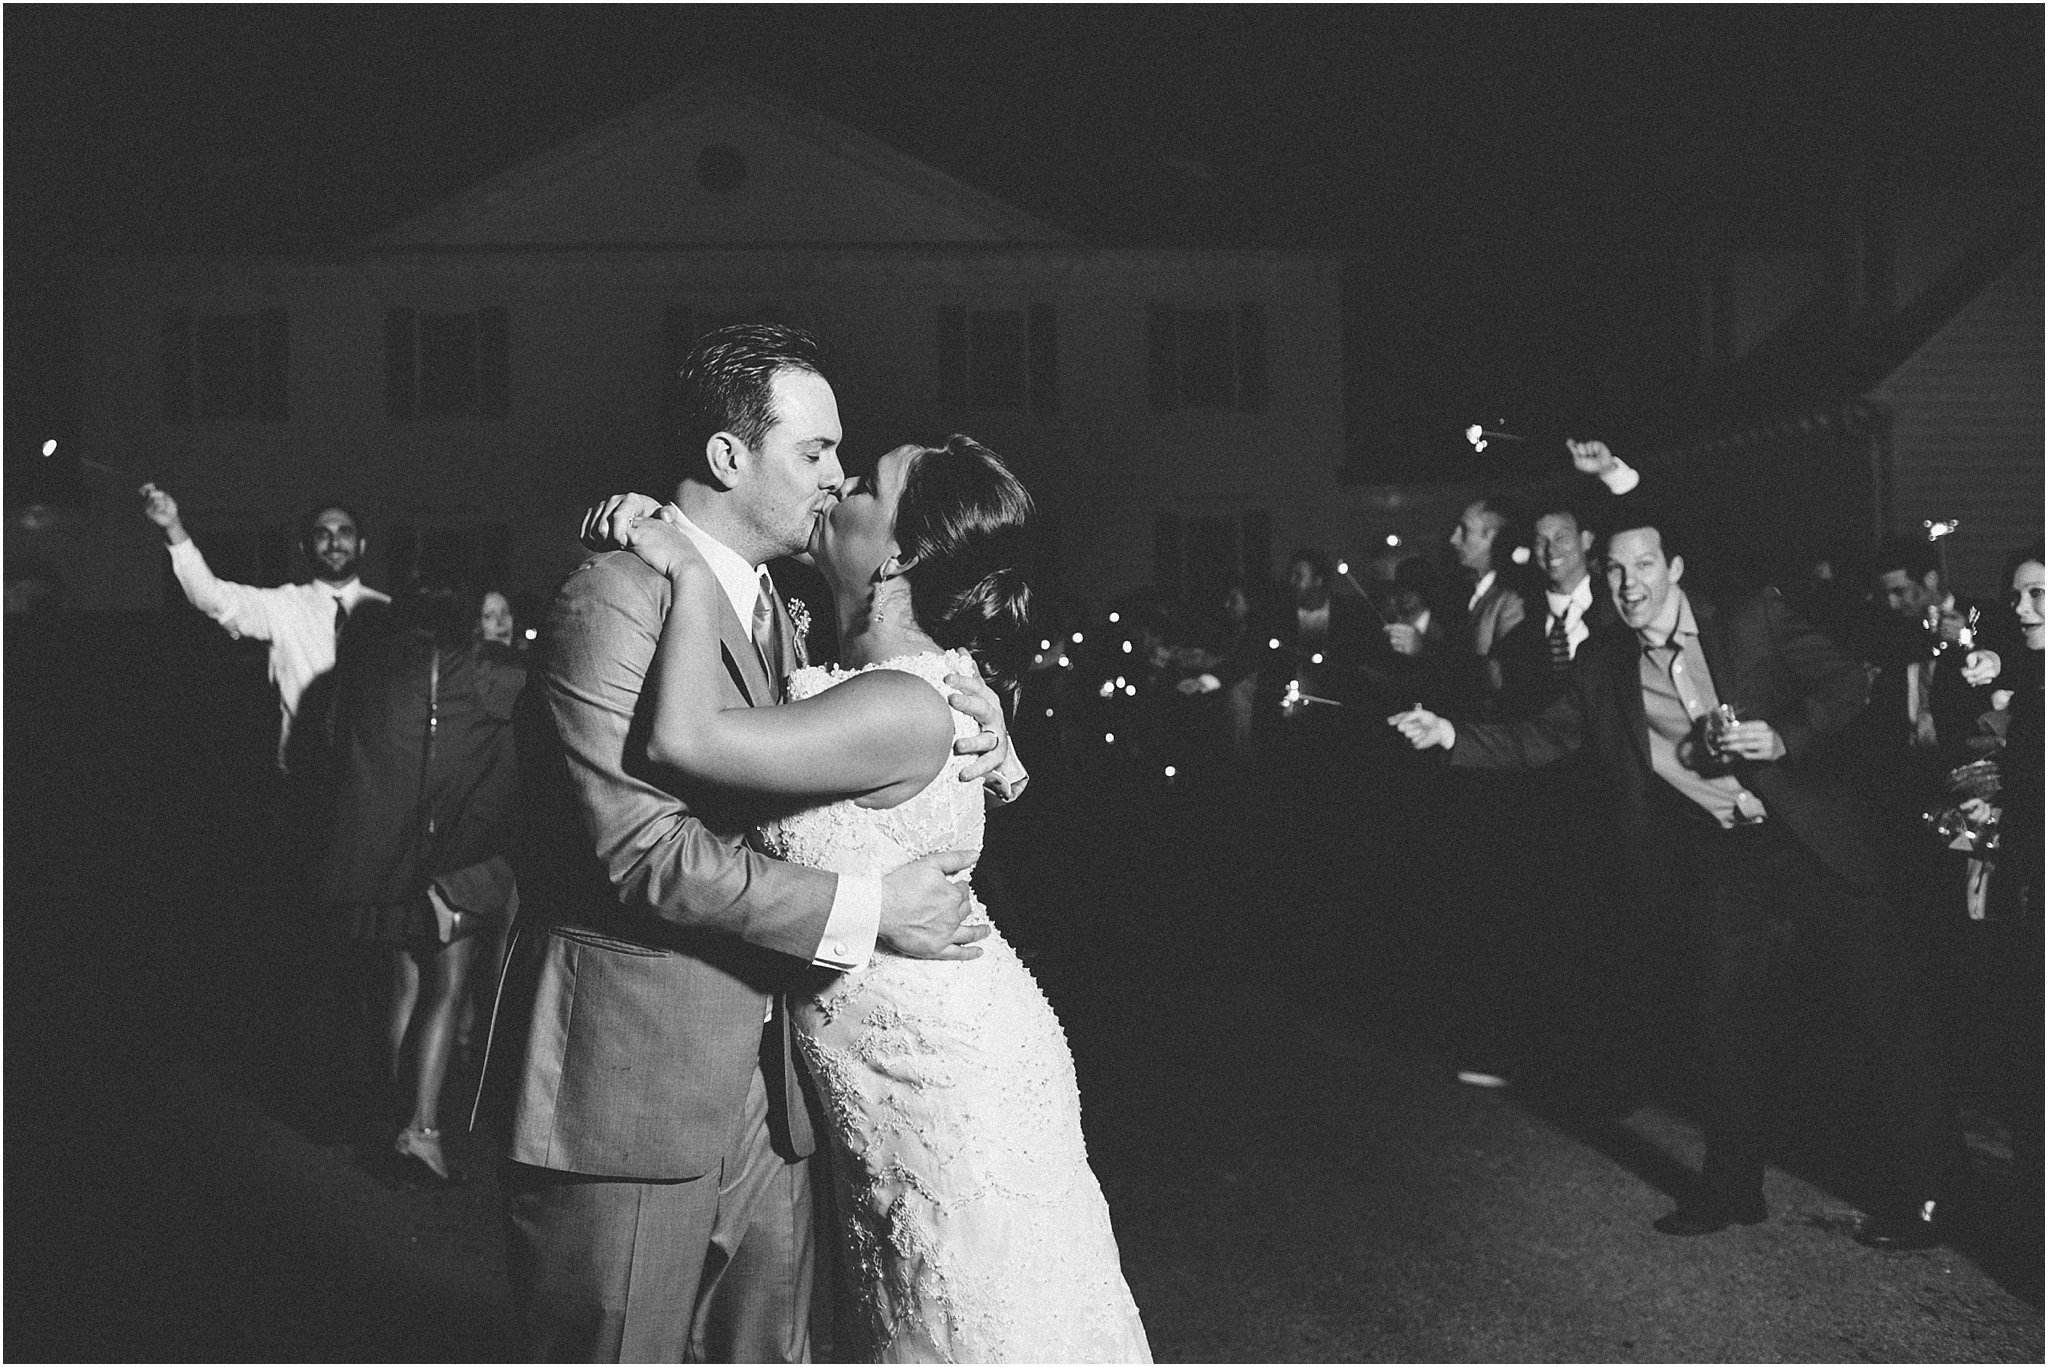 jessica_ryan_photography_holly_ridge_manor_wedding_roost_flowers_jamie_leigh_events_dhalia_edwards_candid_vibrant_wedding_colors_1379